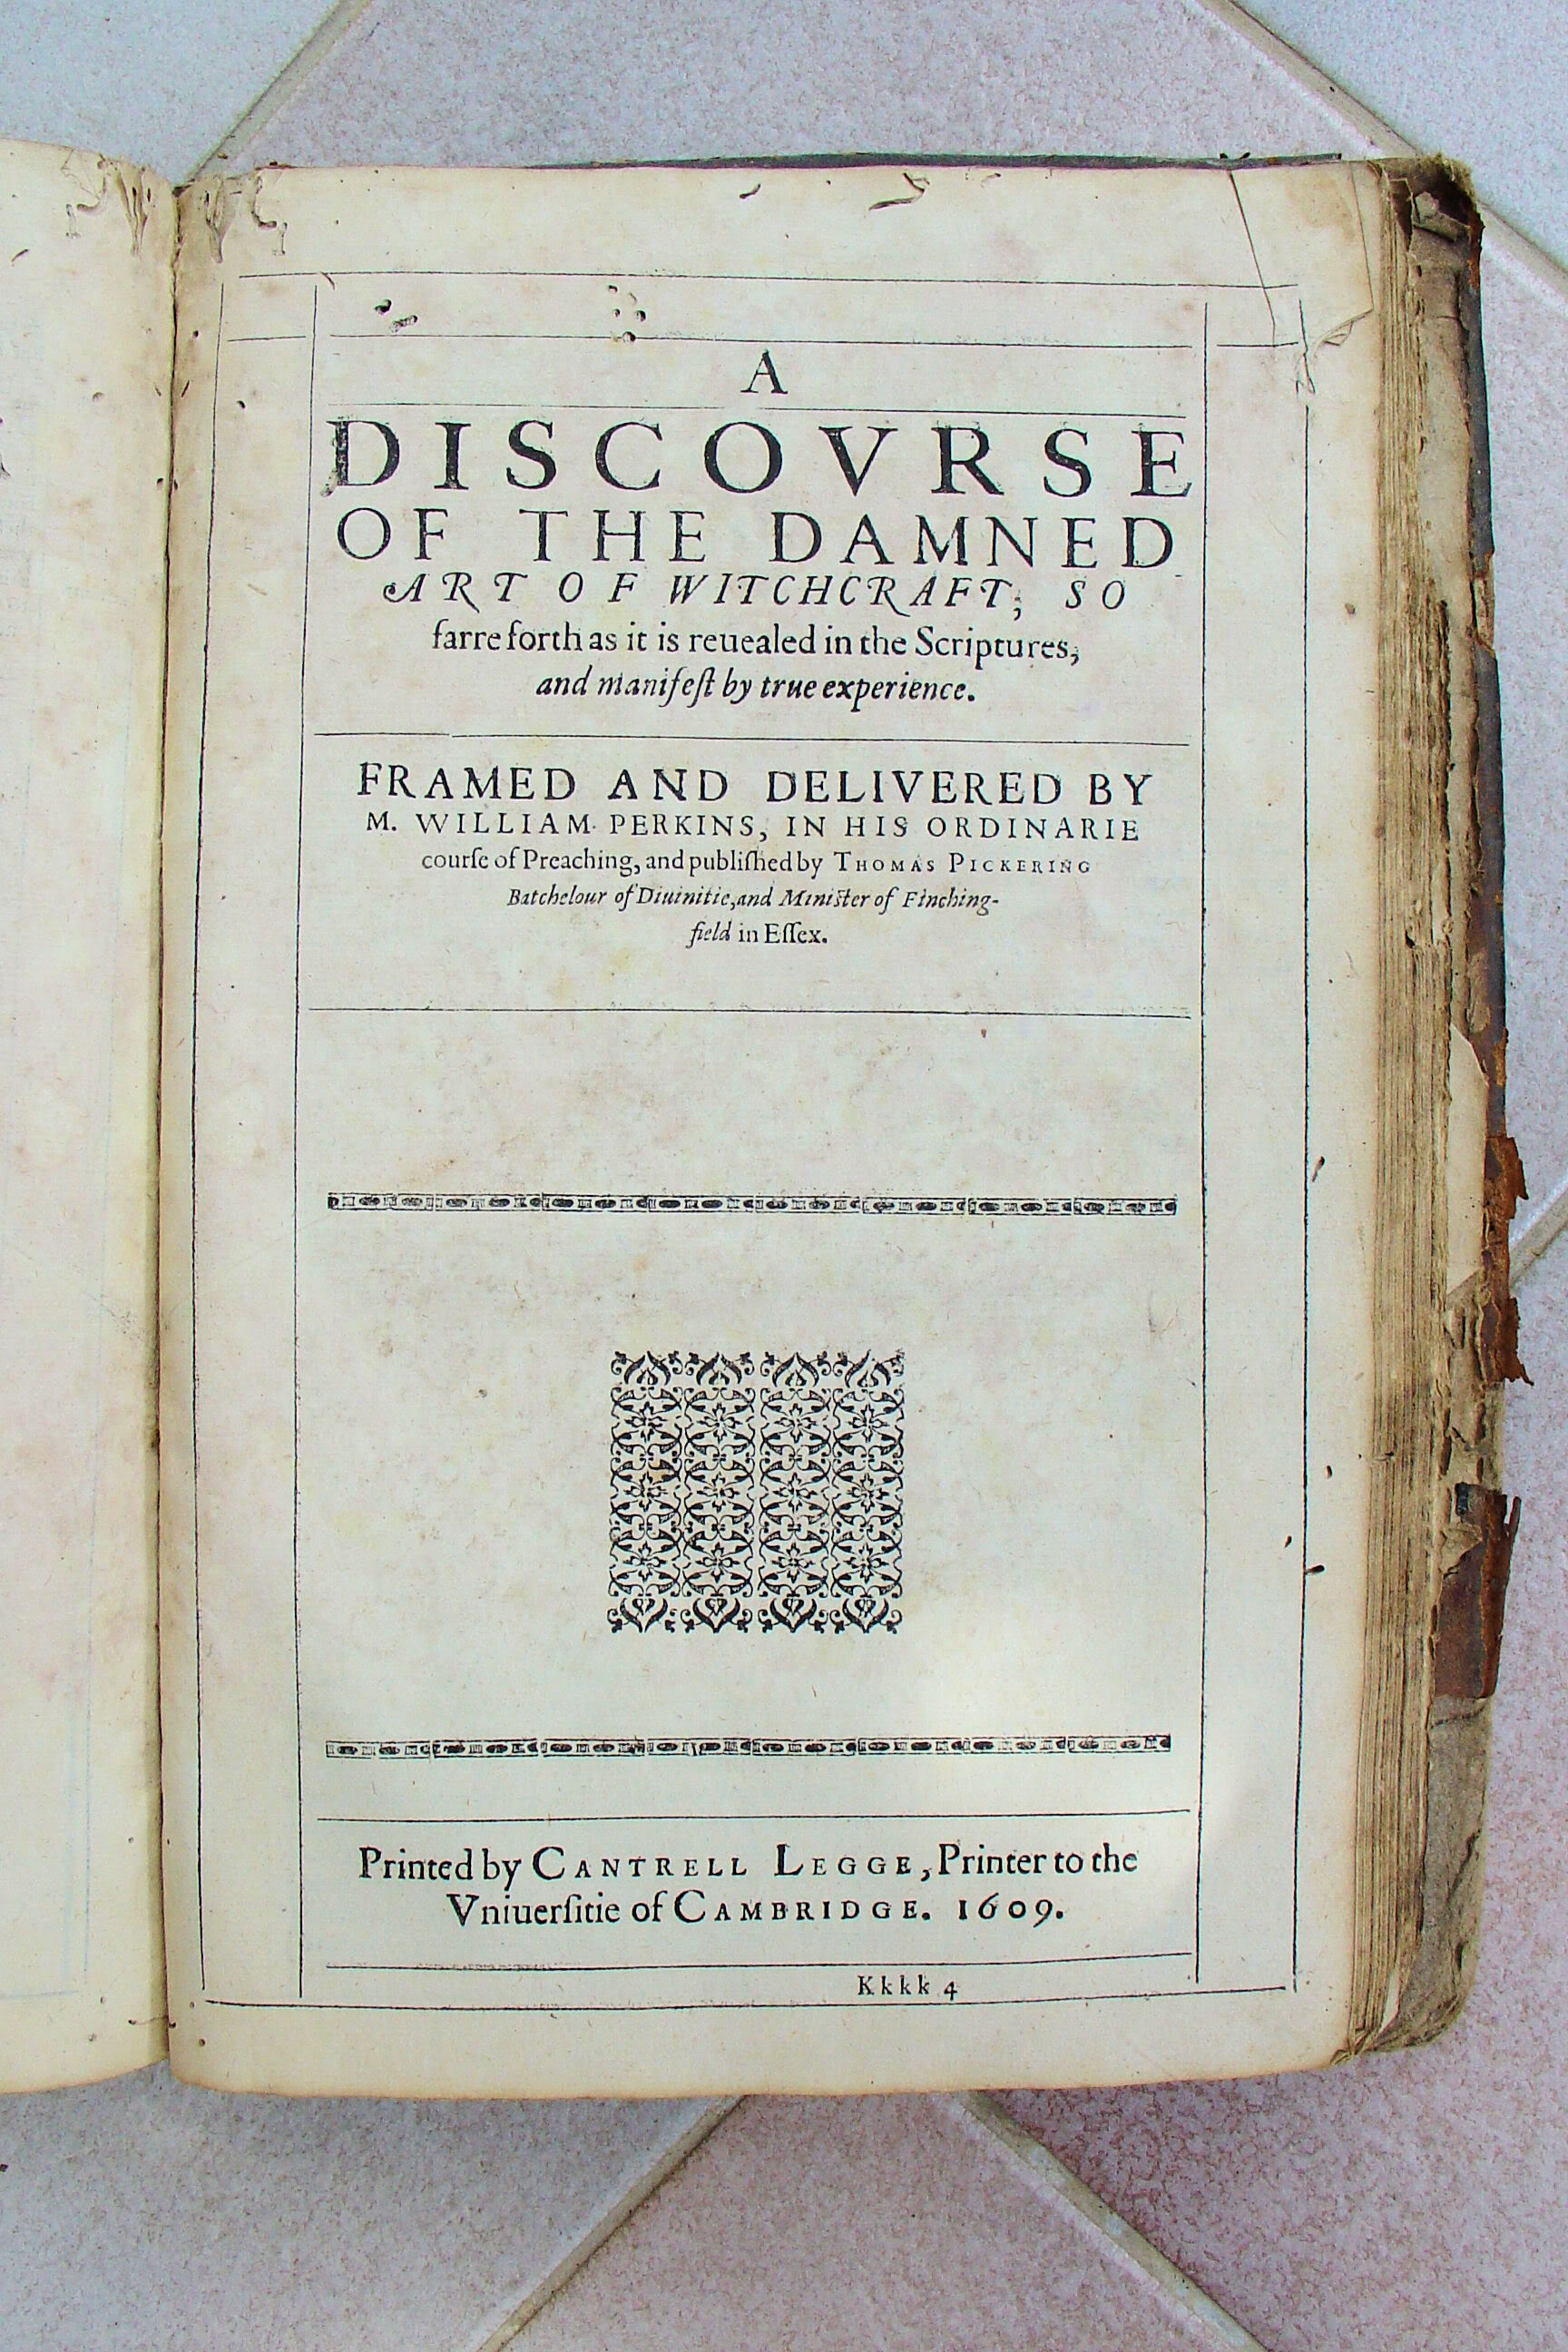 puritan discourse Twenty removes, this middle-aged puritan woman-the wife of a minister and the   including the discourse of an orthodox puritan woman and minister's wife.